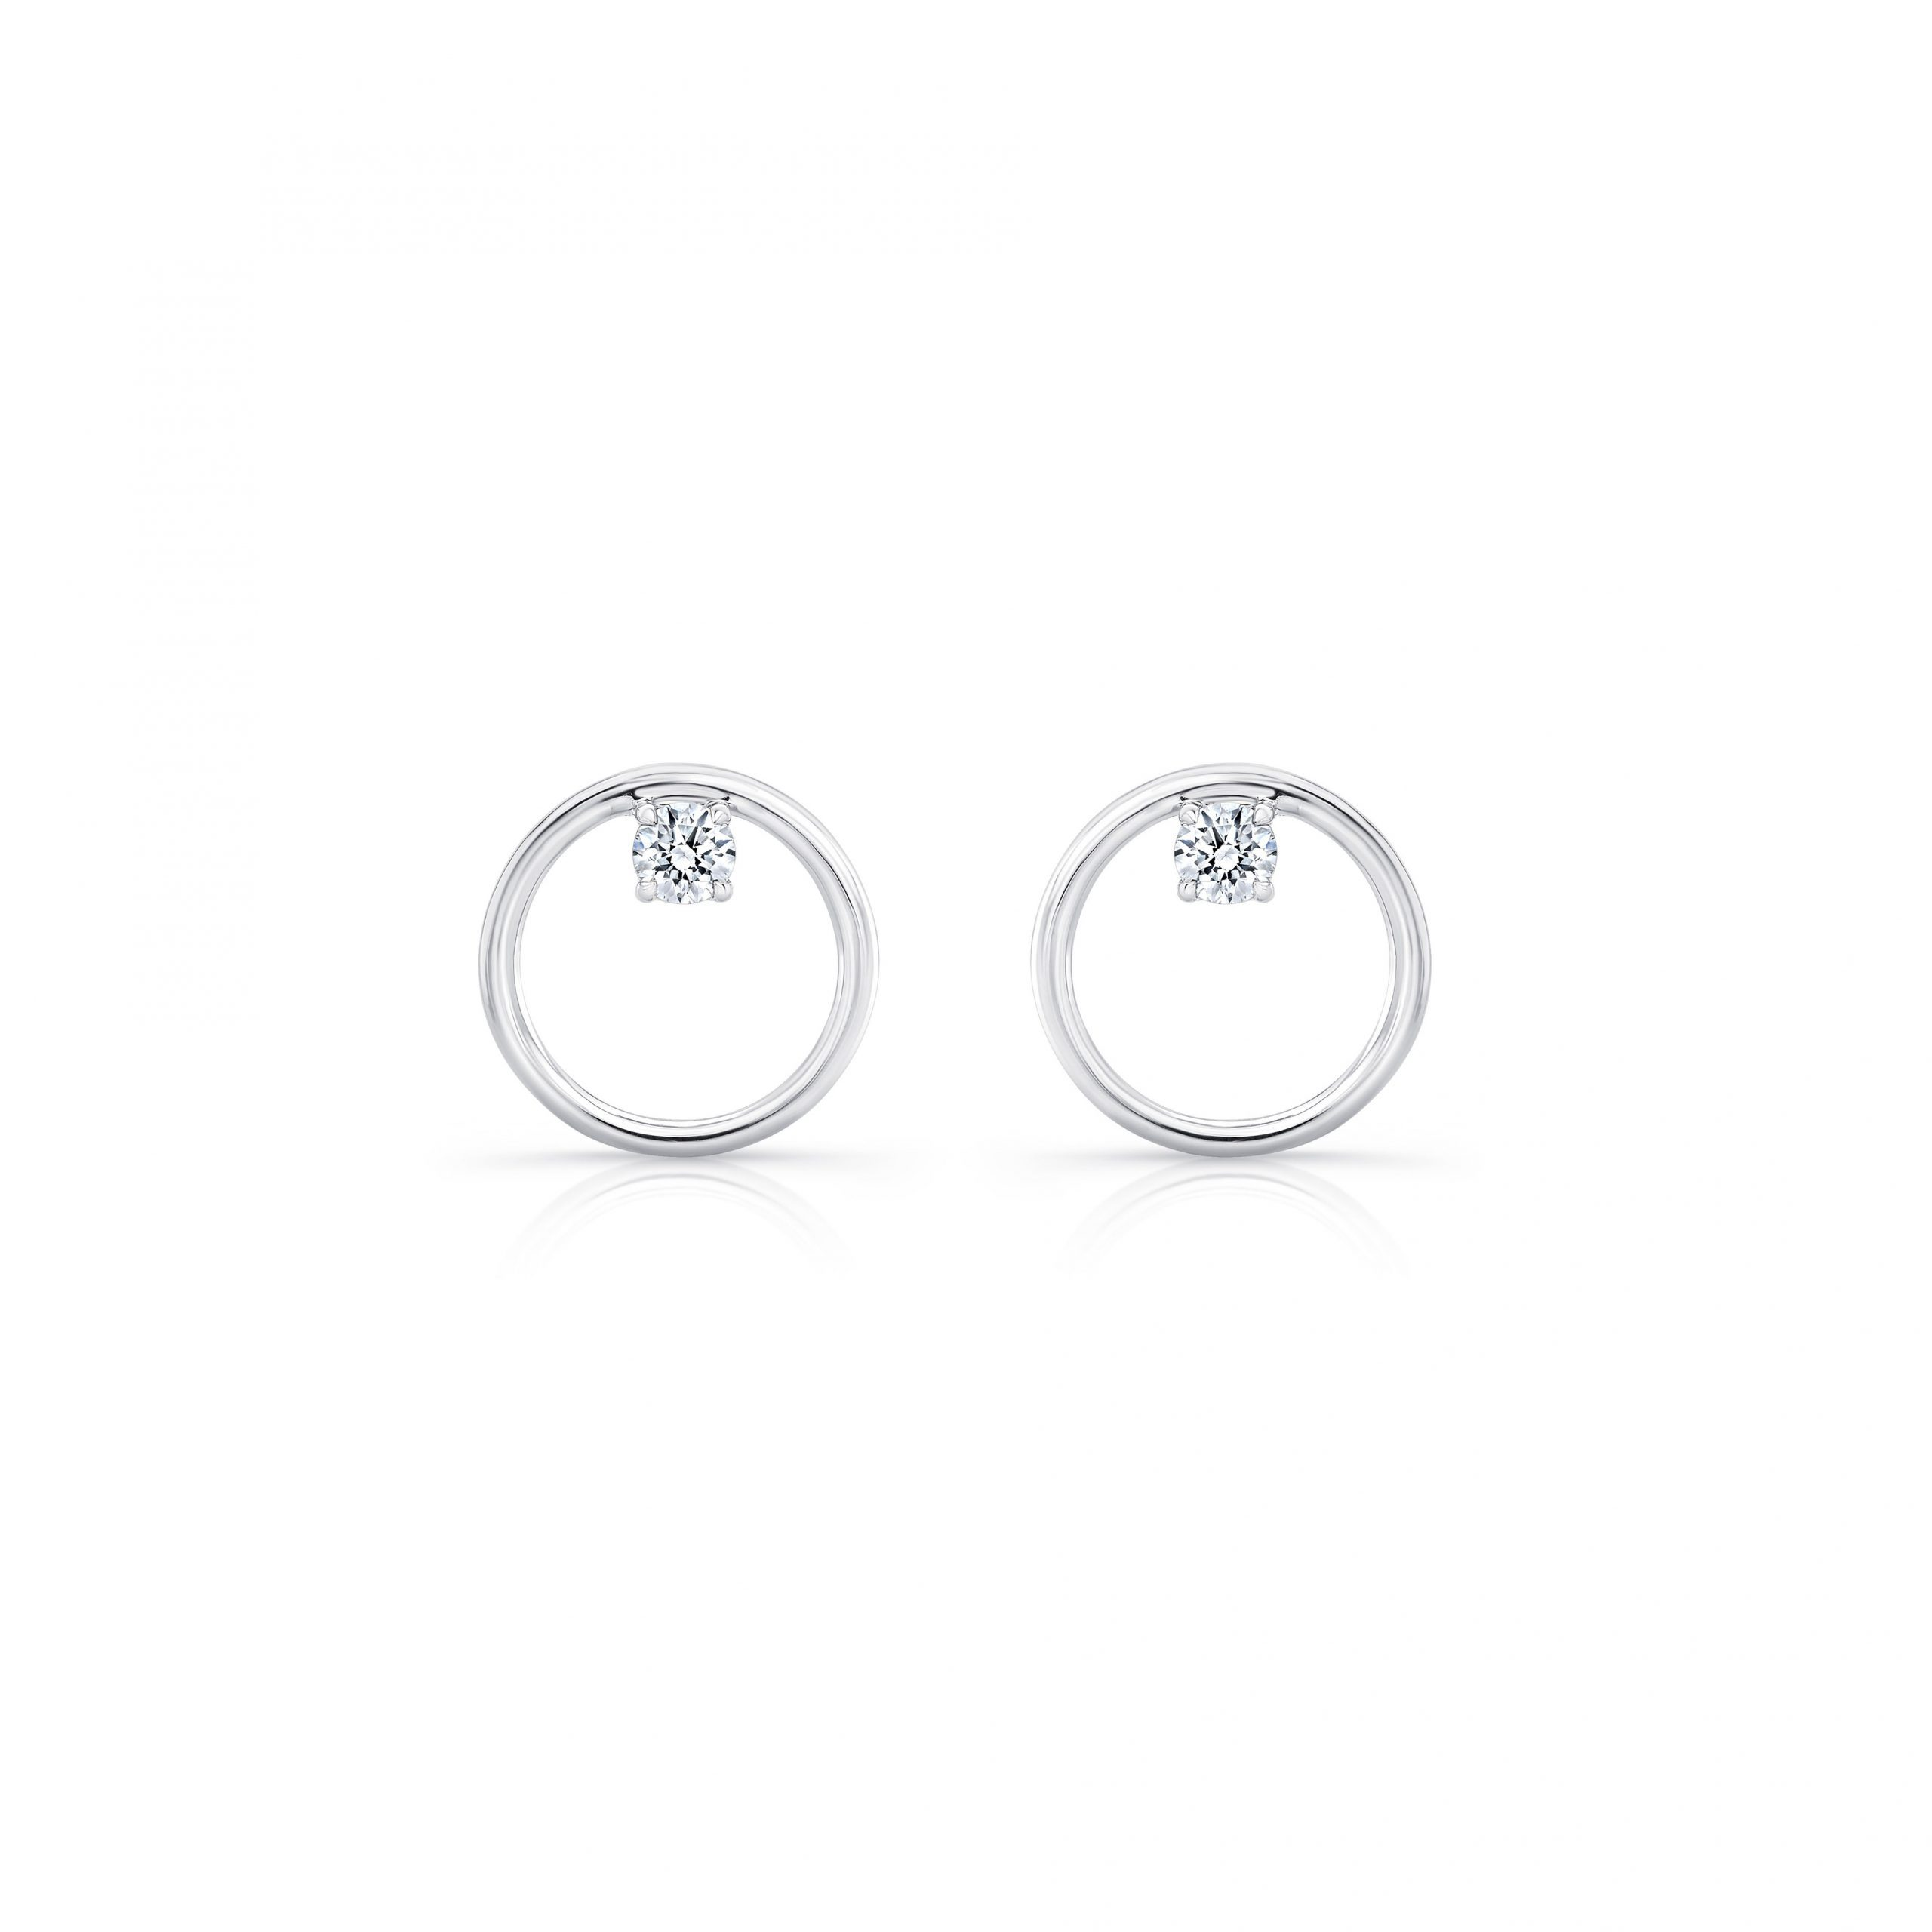 Colette Front Facing Diamond Hoop Earrings in 18k White Gold Front View by Oui by Jean Dousset